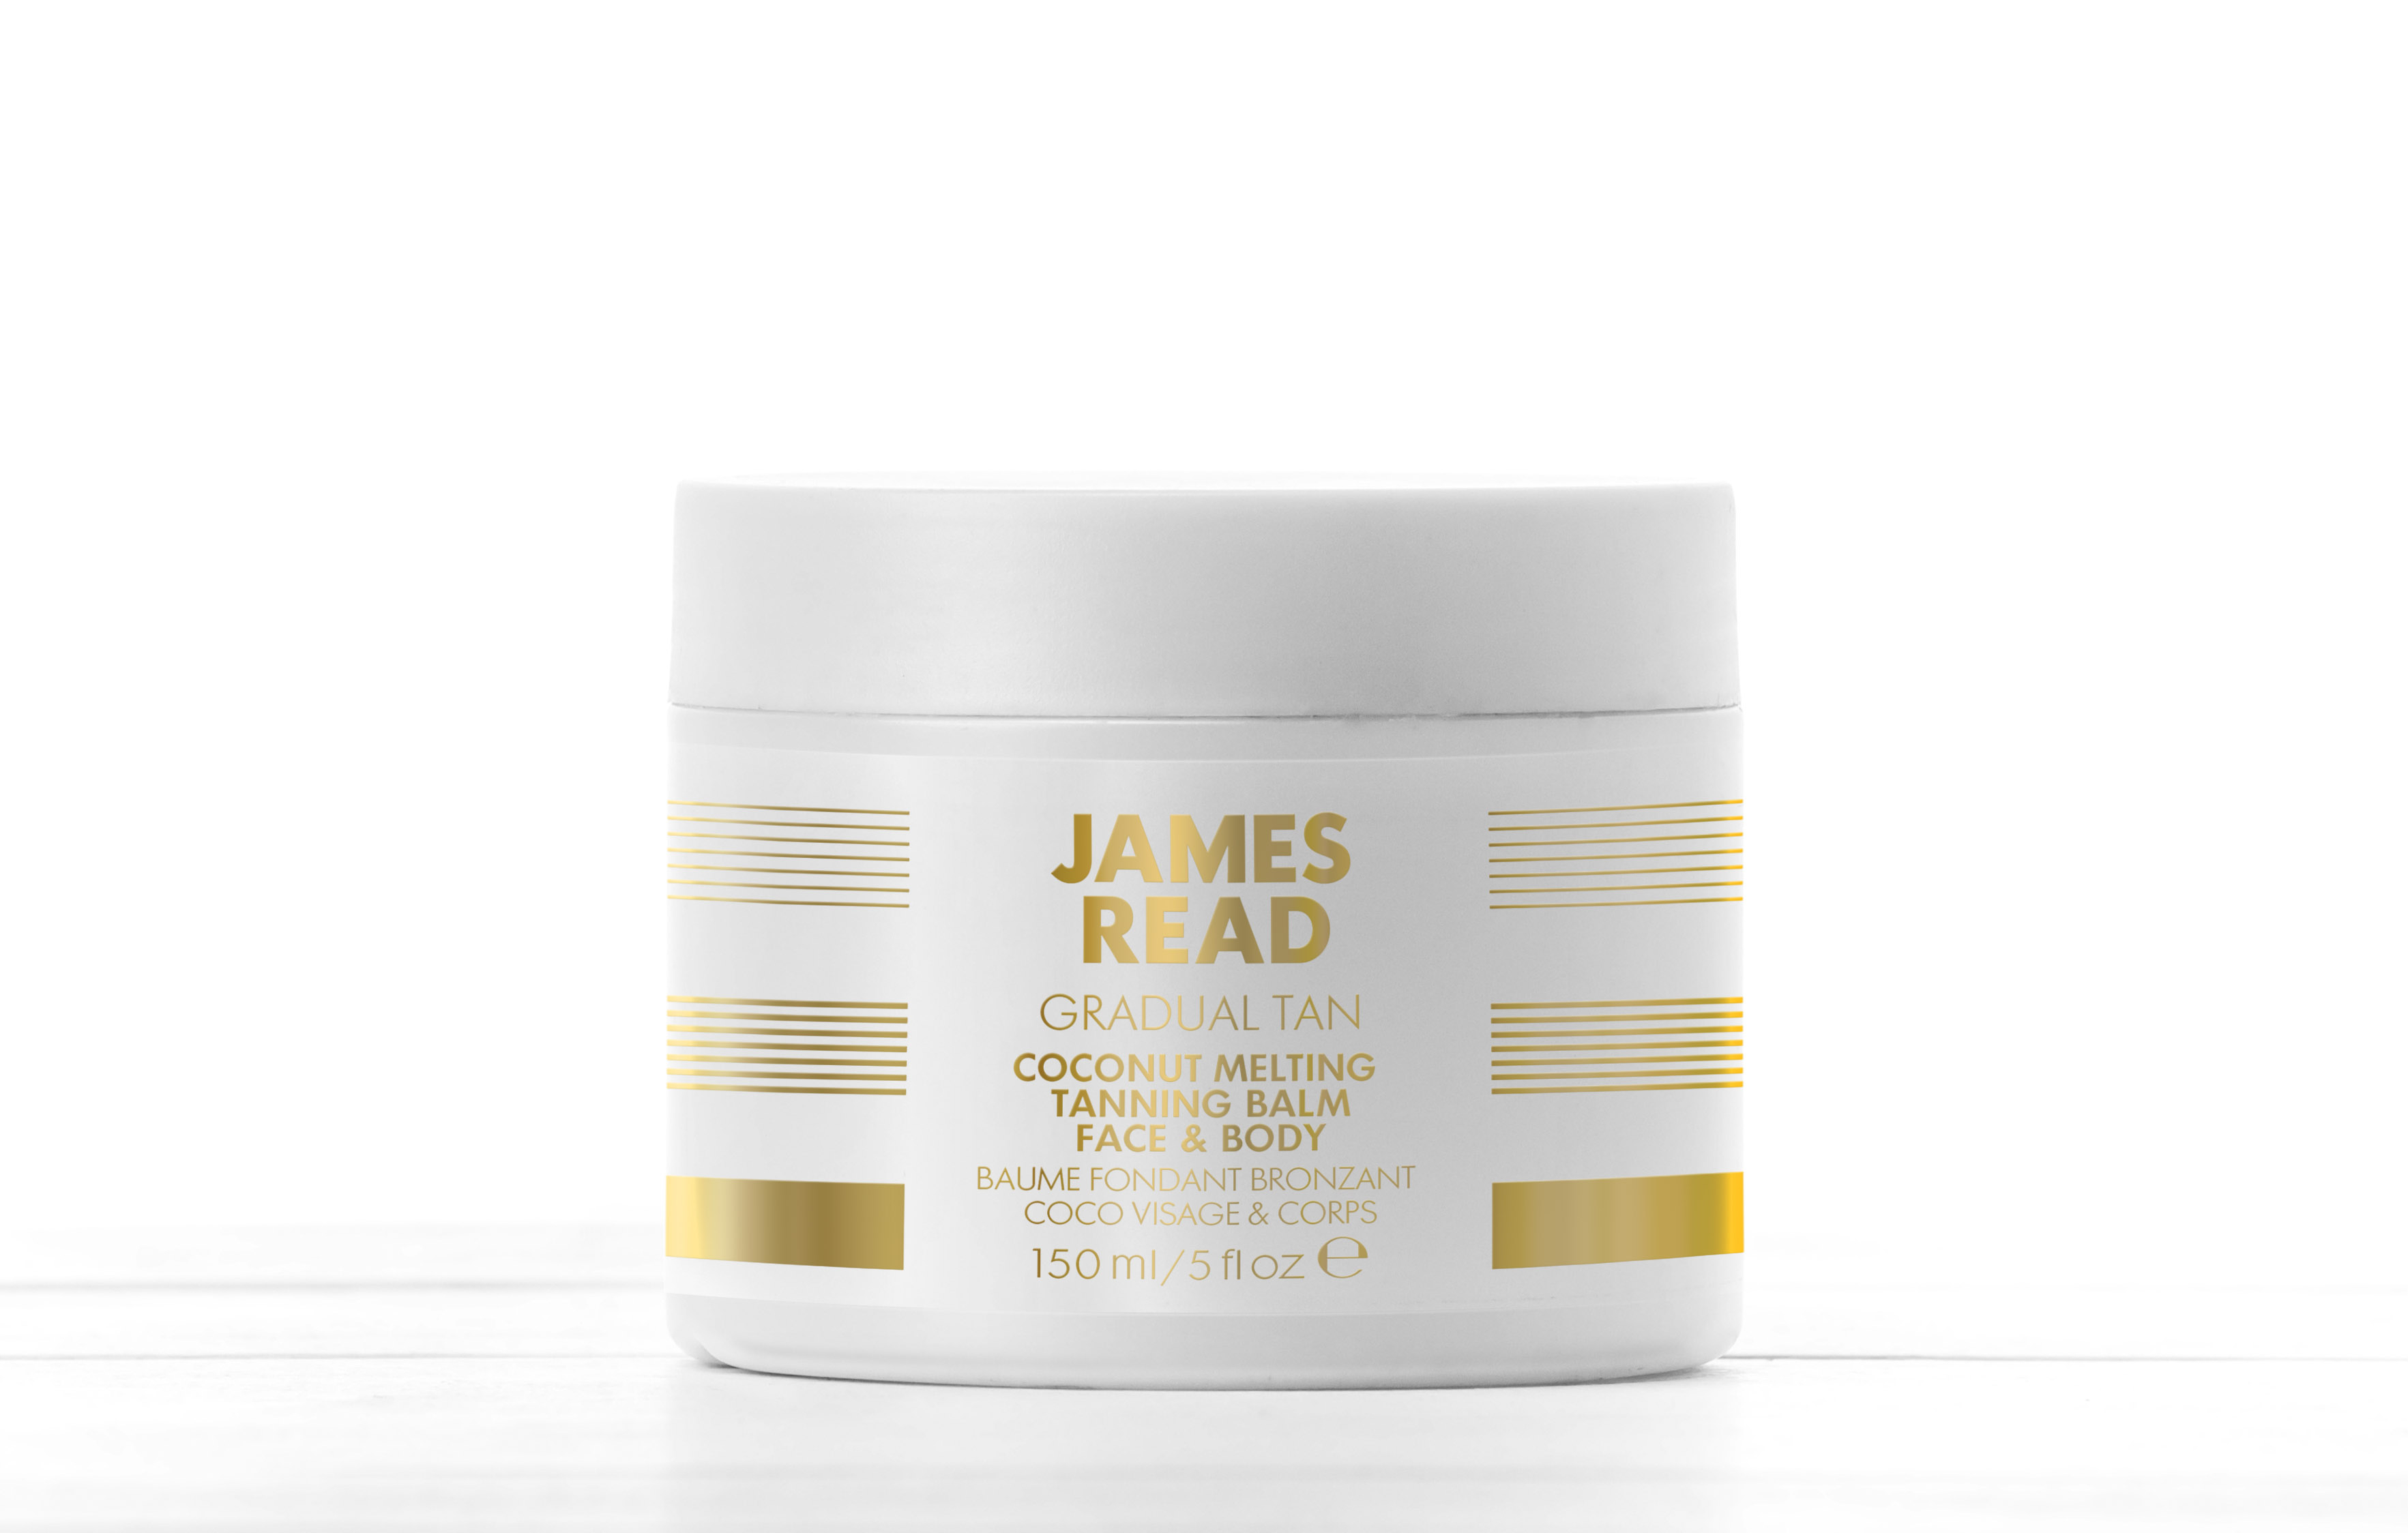 Page 1126 Us Weekly A Dha Cream Hologram Rosie Huntington Whiteleys Tanning Pro James Read Is Following Up His Groundbreaking H20 Mist With Coconut Melting Balm That Disappears